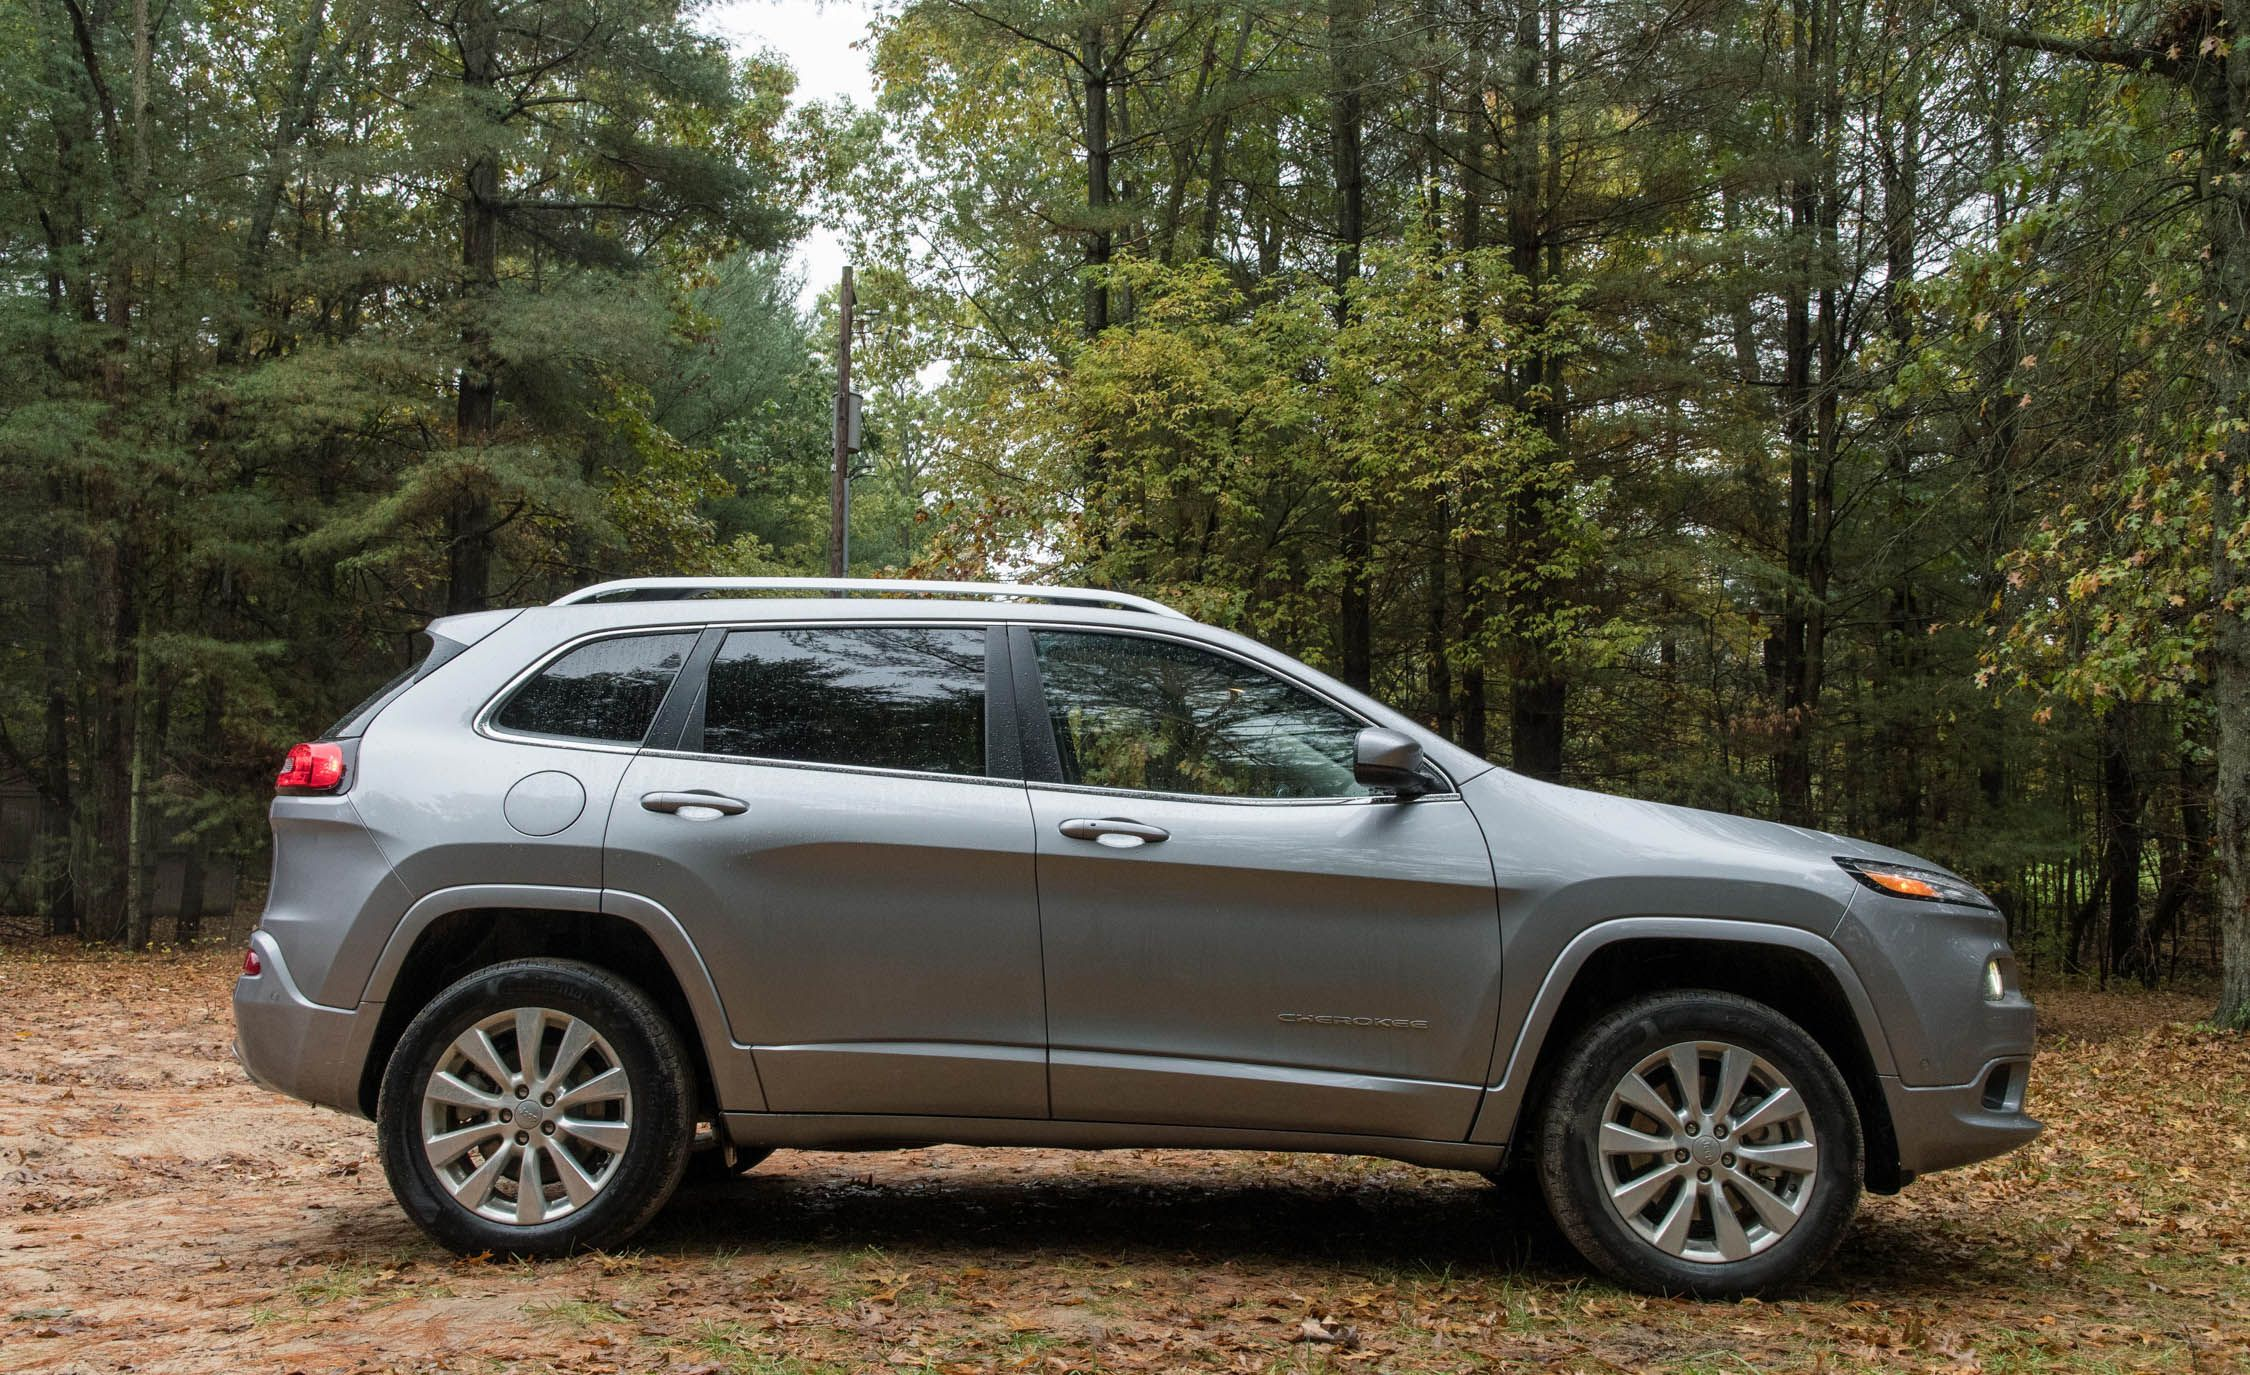 2018 jeep cherokee | in-depth model review | car and driver